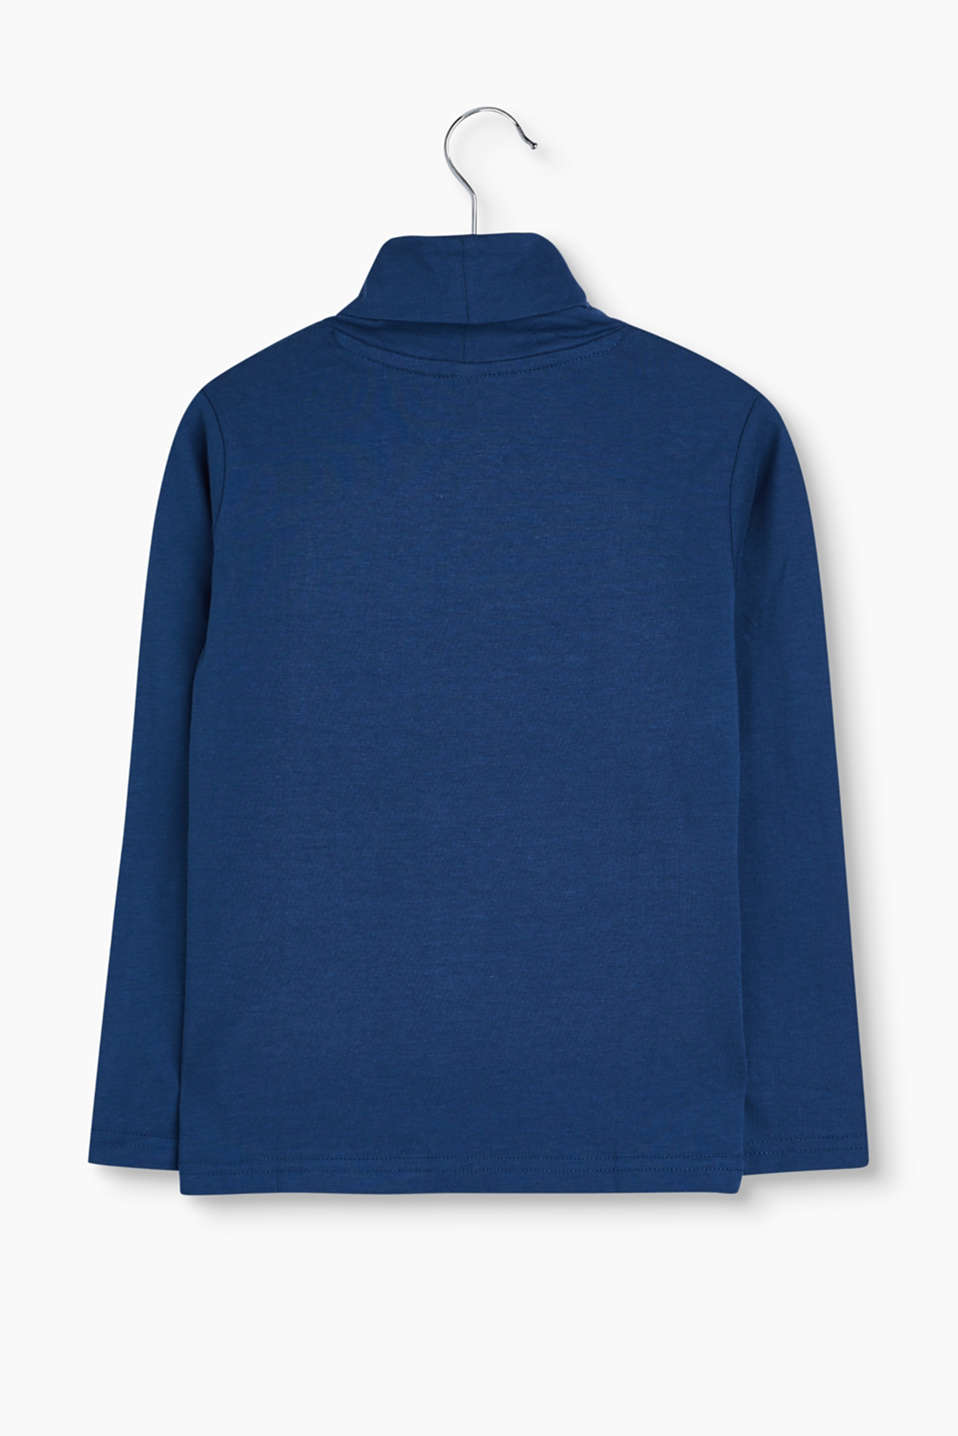 Basic jersey polo neck in soft jersey